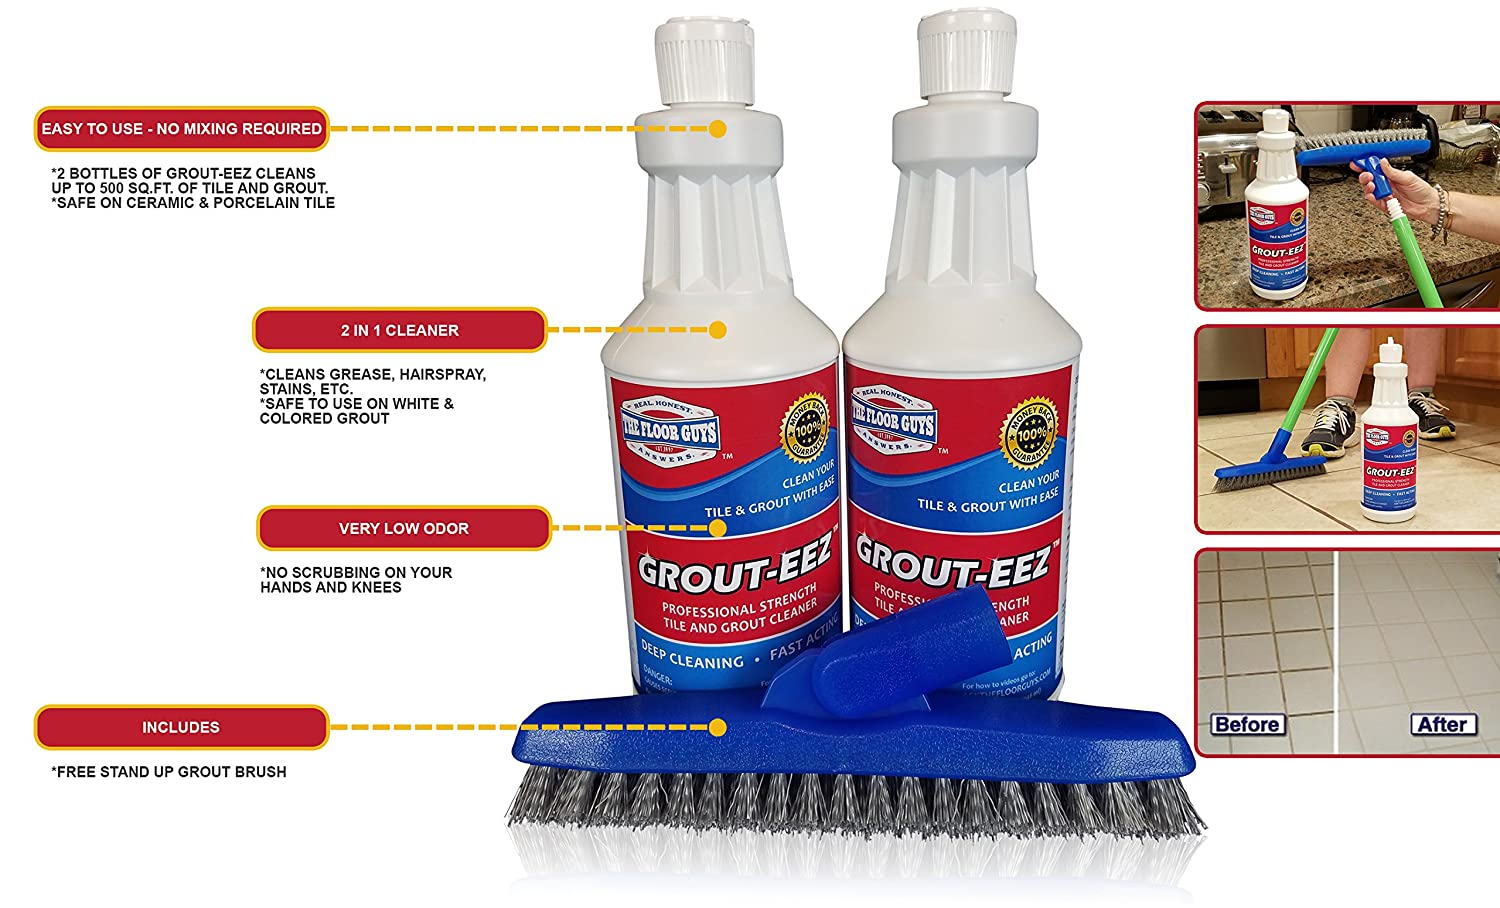 Amazon it just works grout eez super heavy duty tile grout grout eez super heavy duty tile grout cleaner quickly destroys dirt grime safe for all grout easy to use 2 pack with free stand up brush dailygadgetfo Images